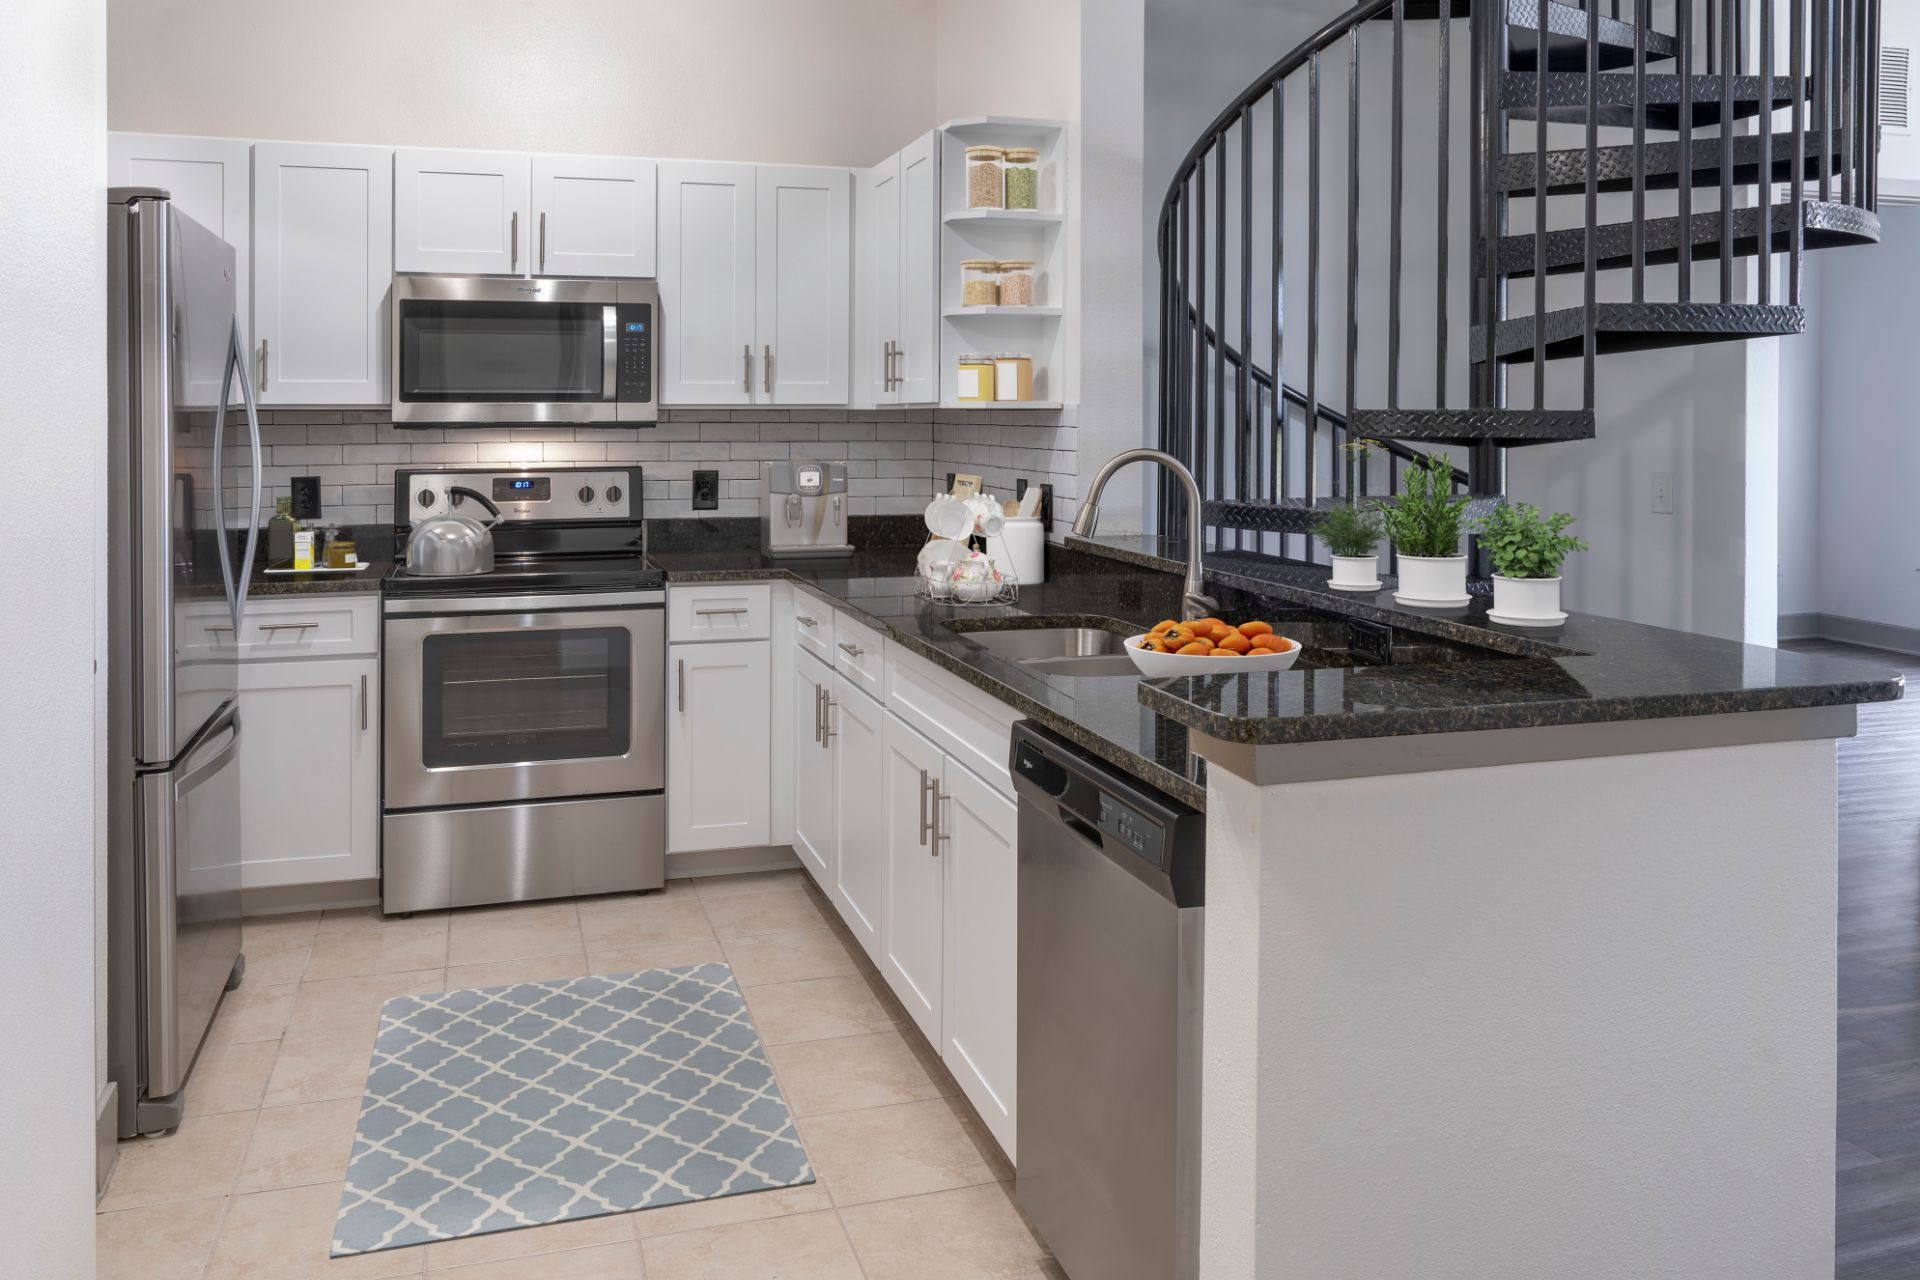 Apartment kitchen with stainless steel appliances and view of staircase